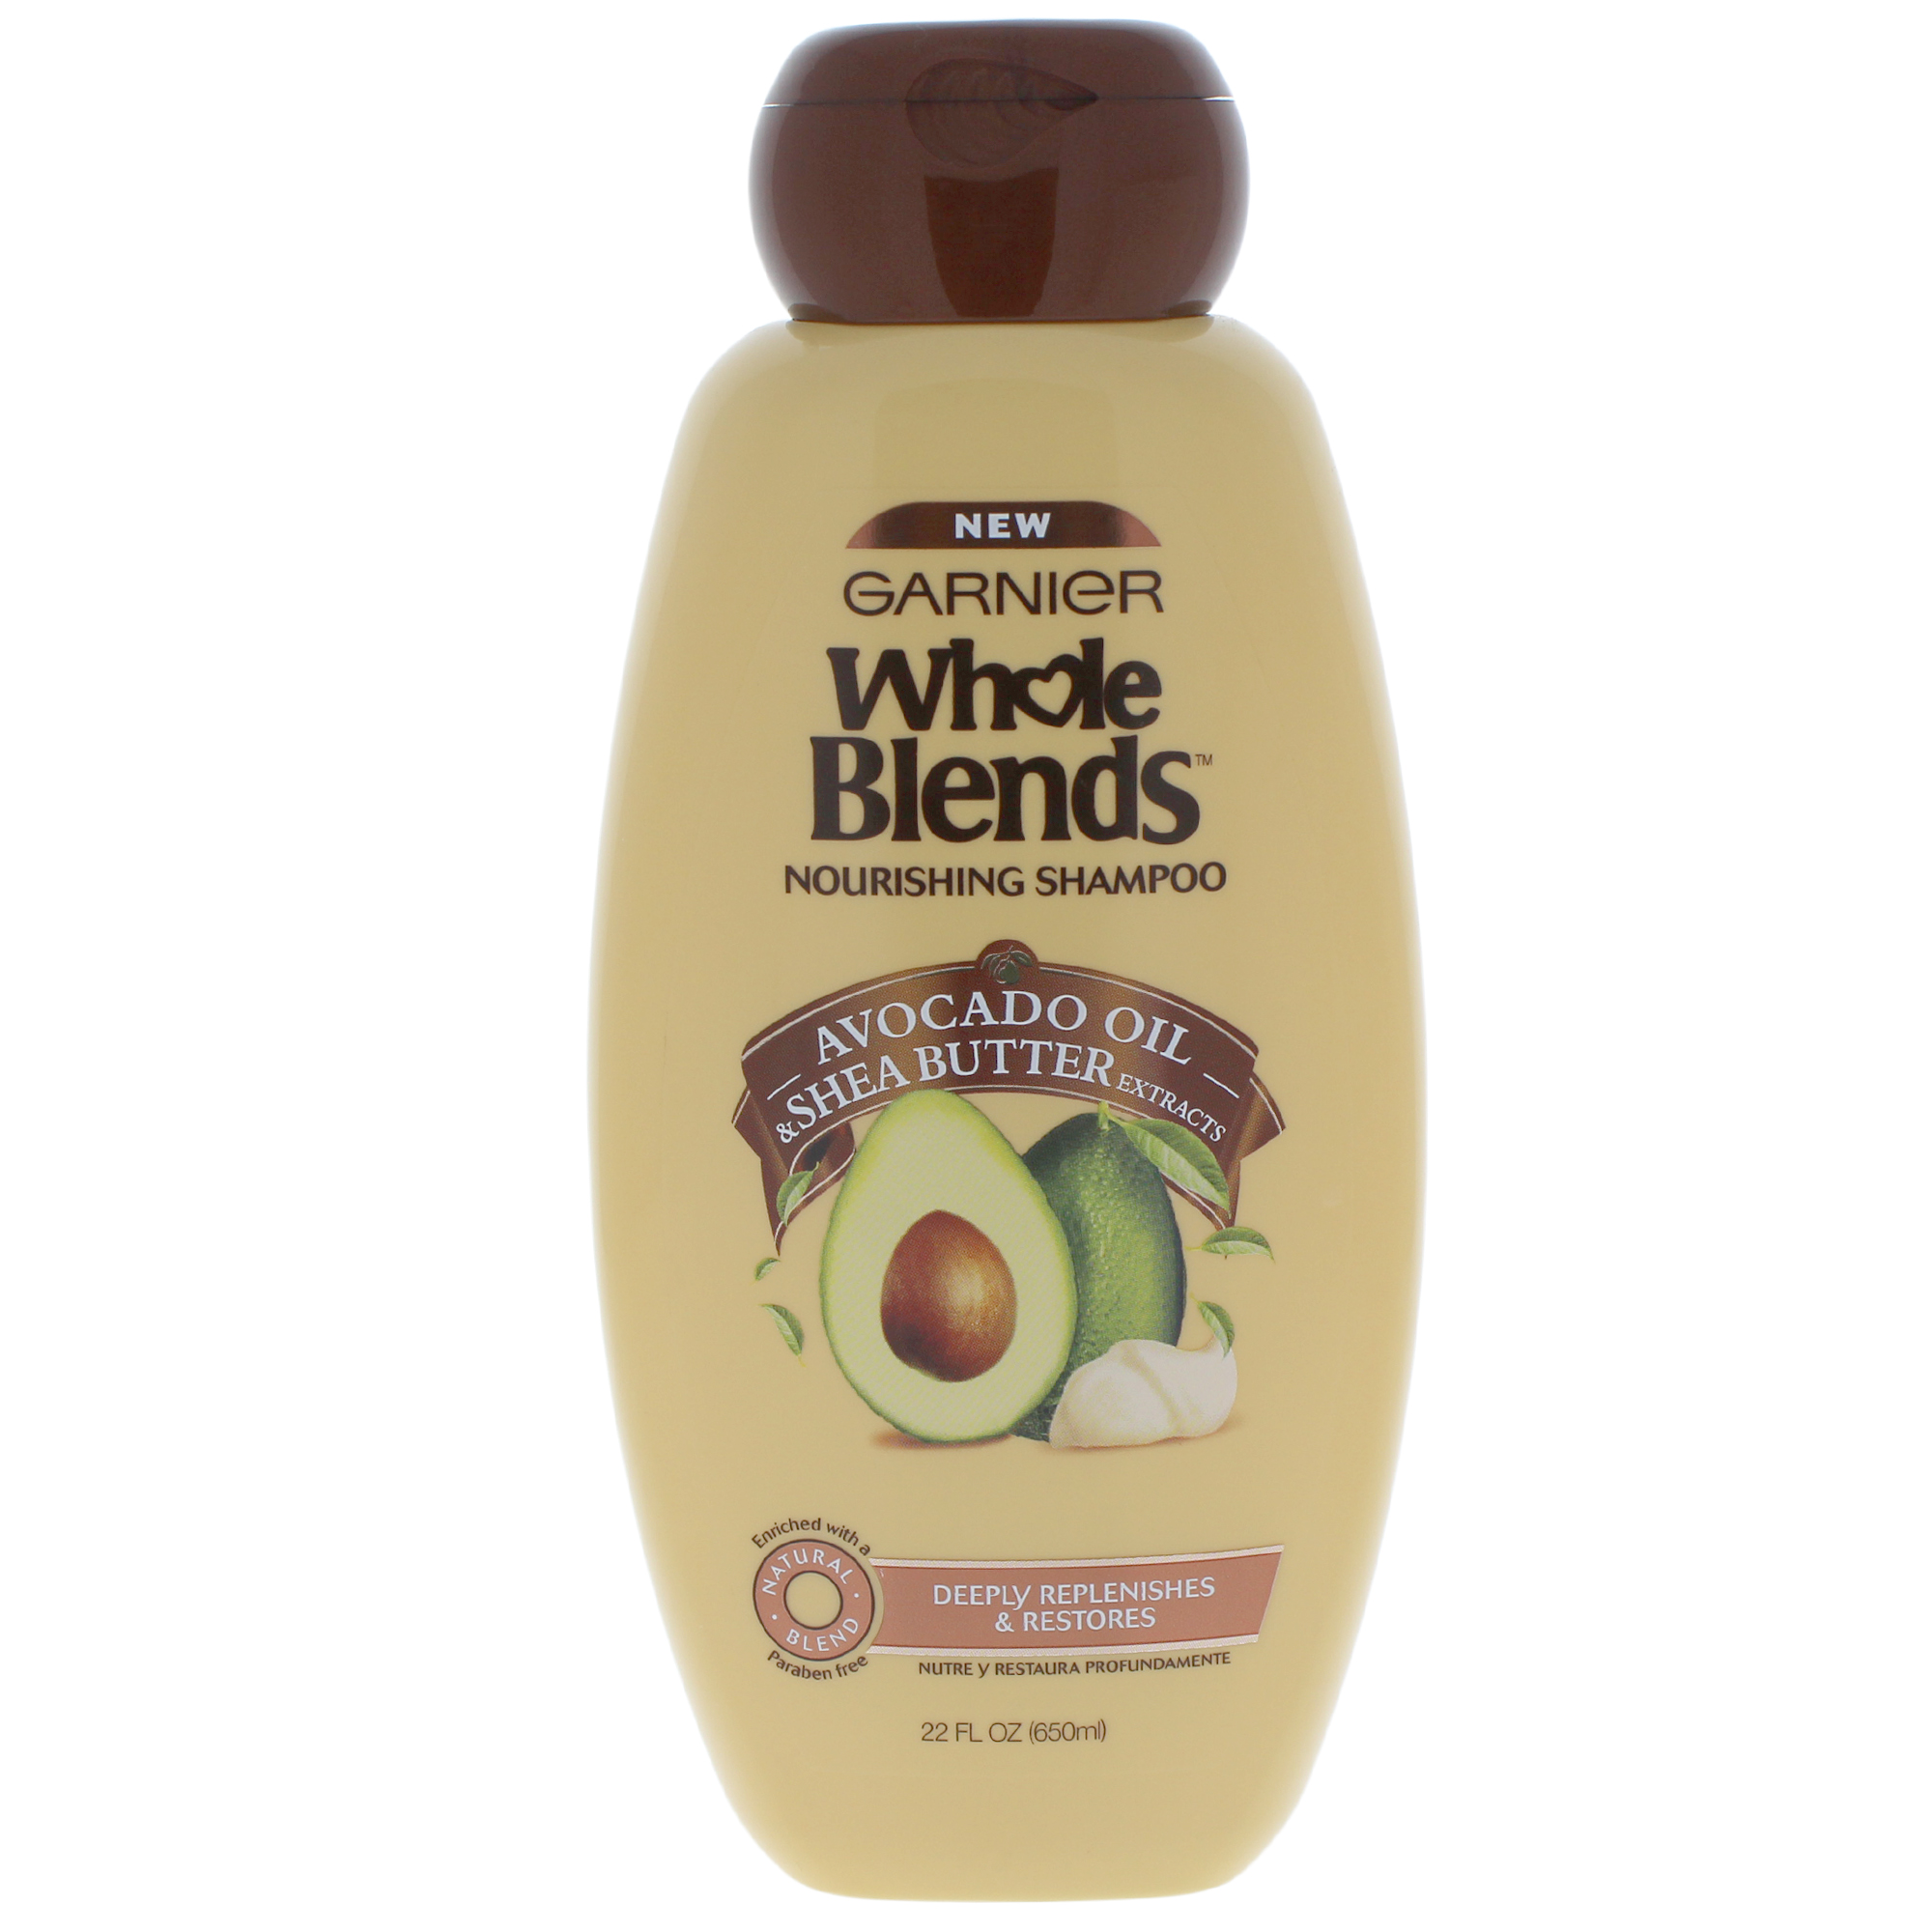 Garnier Whole Blends Shampoo with Avocado Oil & Shea Butter Extracts 22 FL OZ